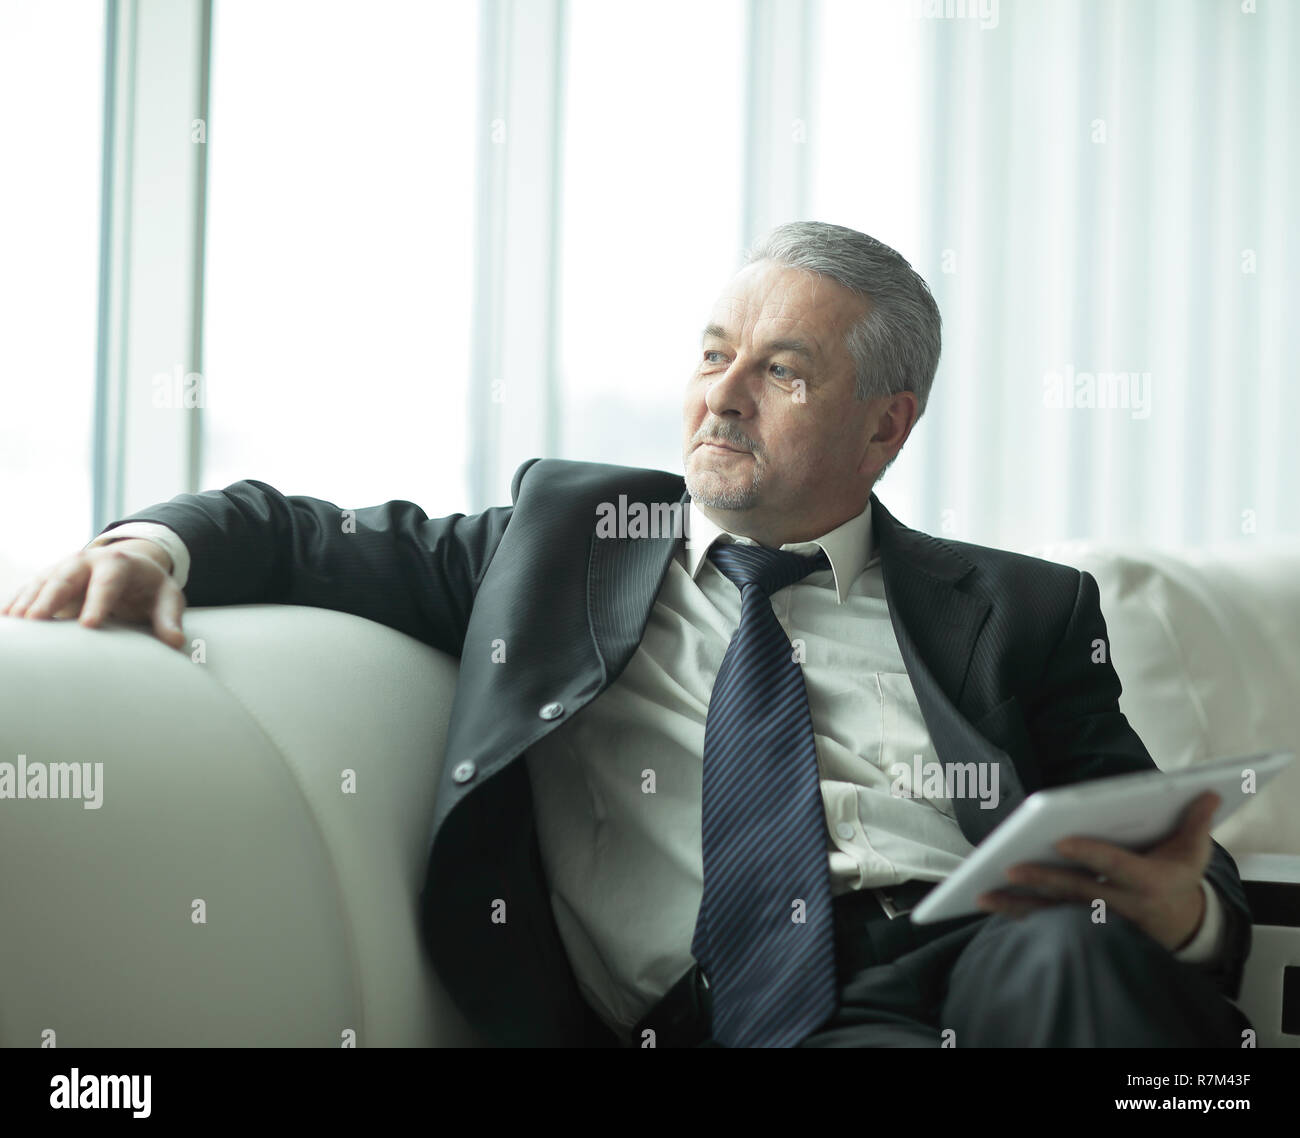 responsible businessman sitting in modern office.people and technology - Stock Image